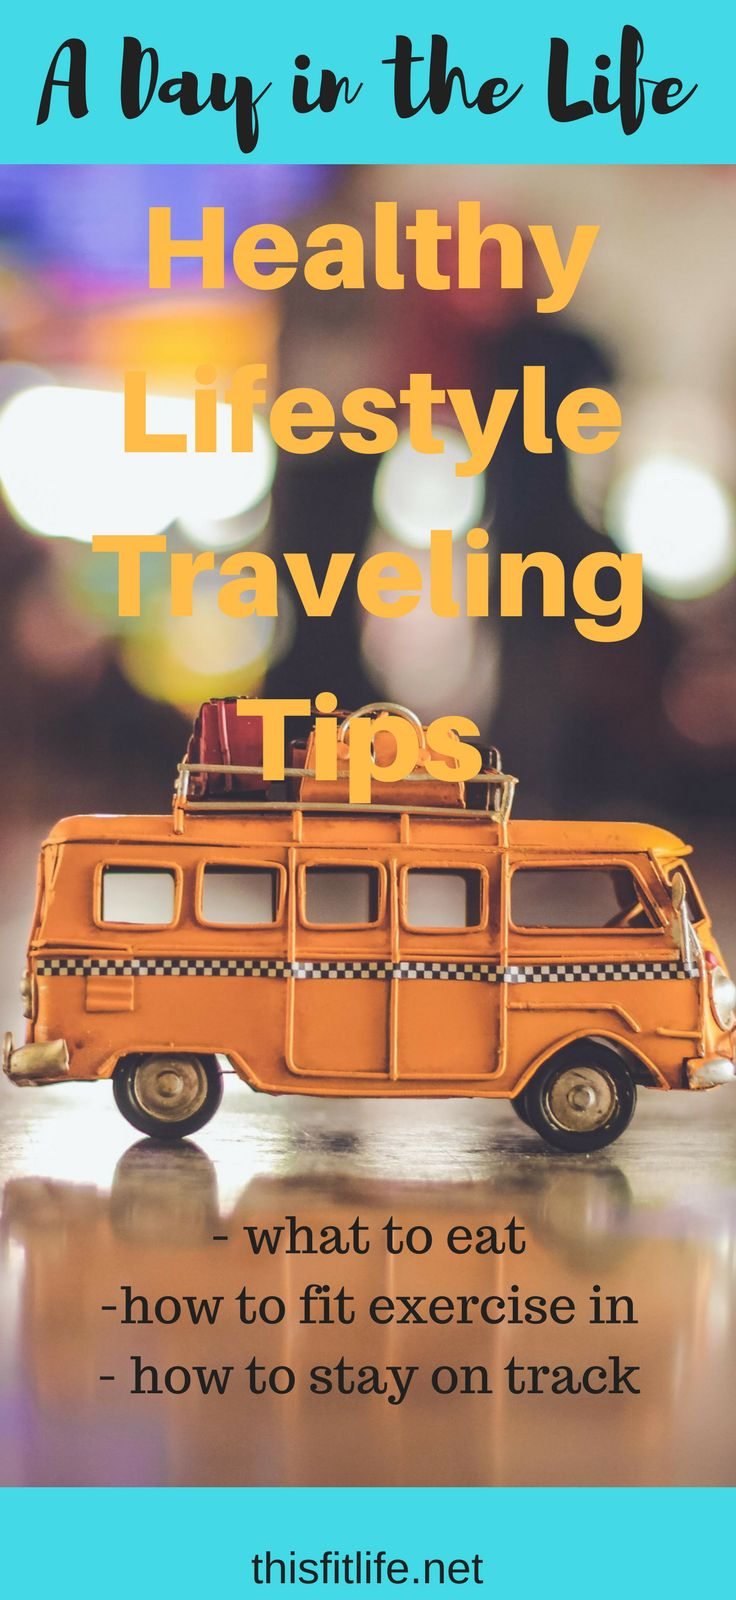 Healthy lifestyle tips while traveling!  Even if you are on the road or on vacation, you can still stick to a healthy lifestyle that includes clean eating and exercise AND you can still enjoy yourself!  Check this out and I'll show you how!